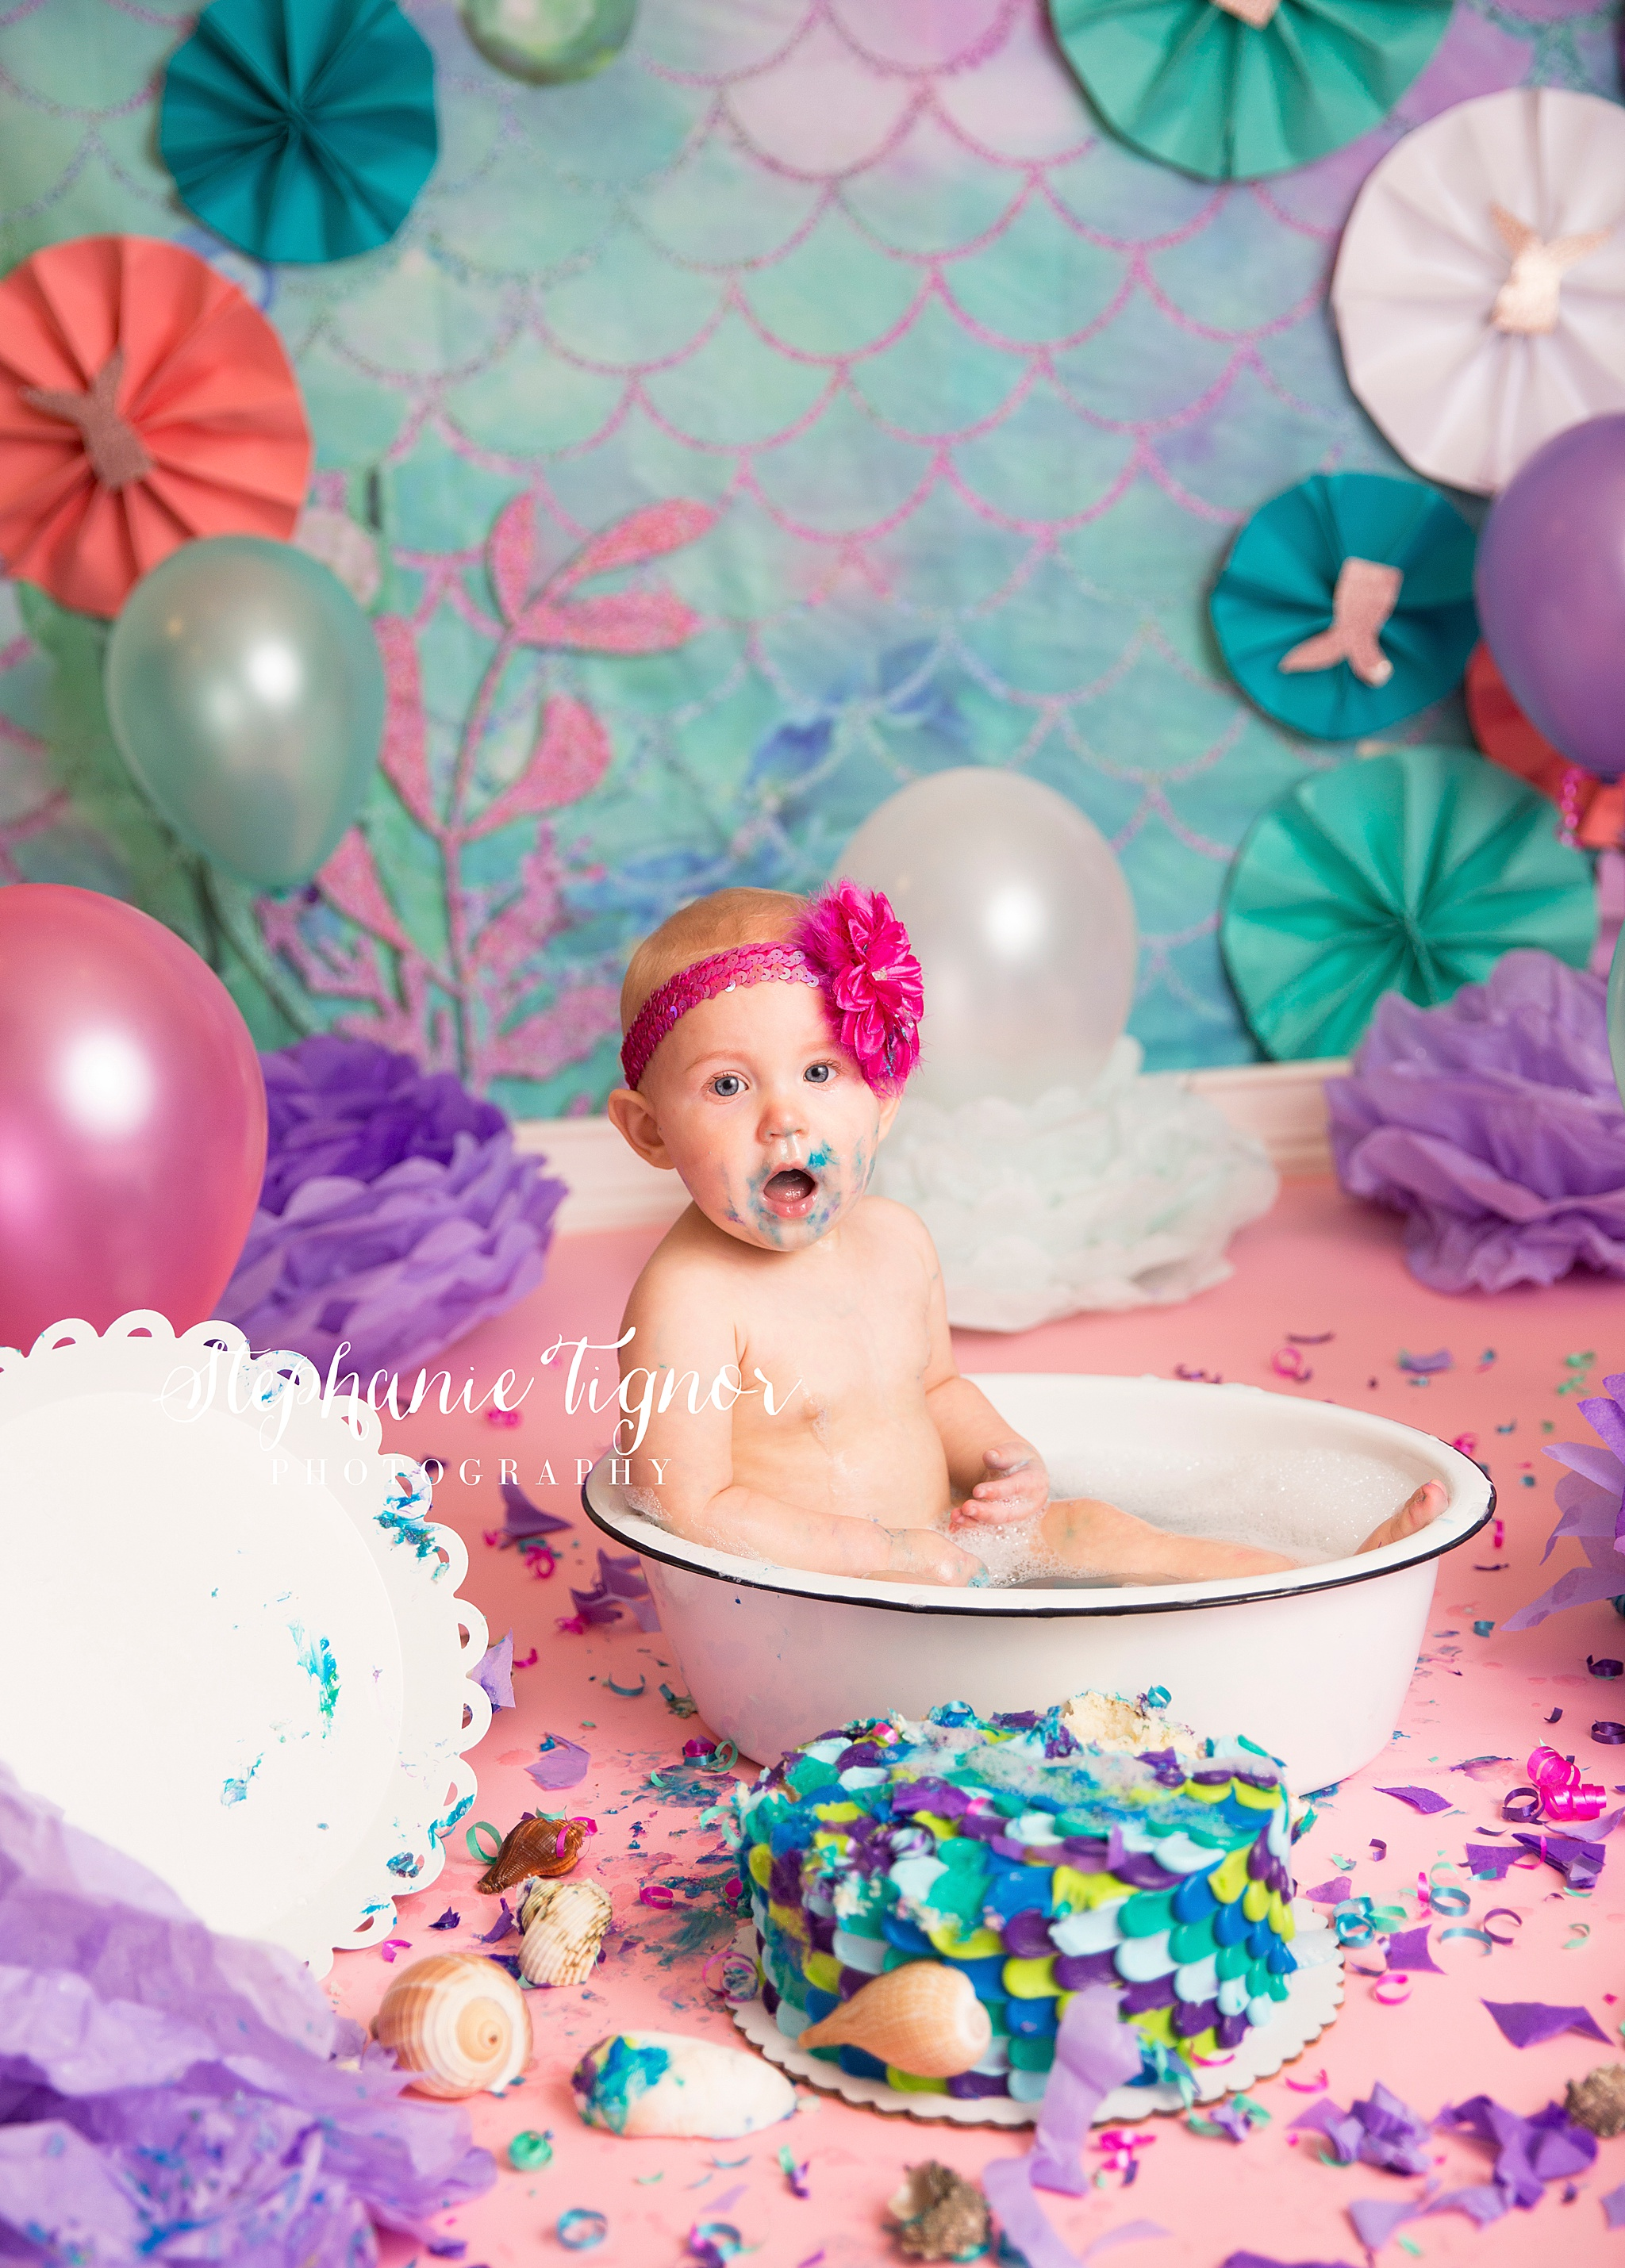 Stephanie Tignor Photography_Cake Smash_0092.jpg